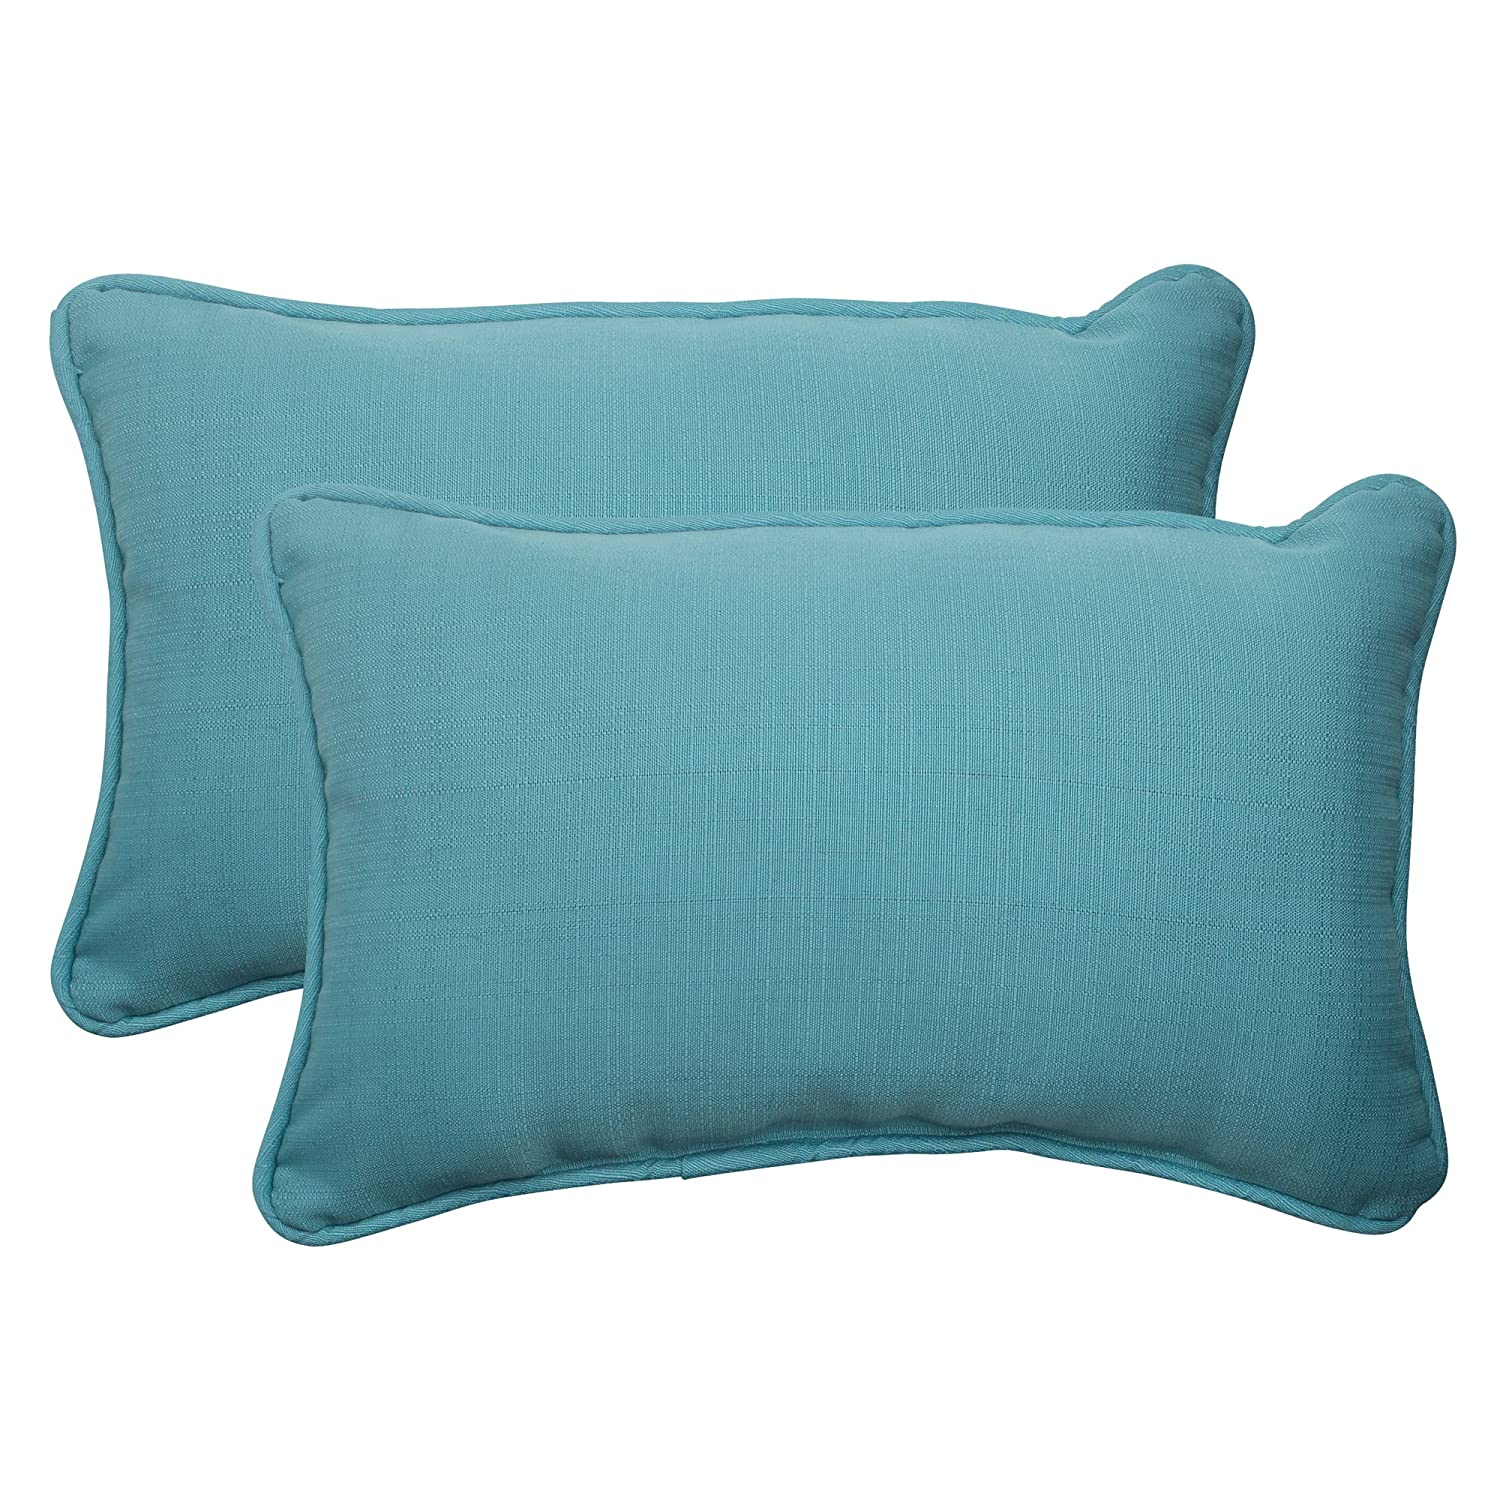 throw with couch turquoise pillow modern concept decorative pillows for